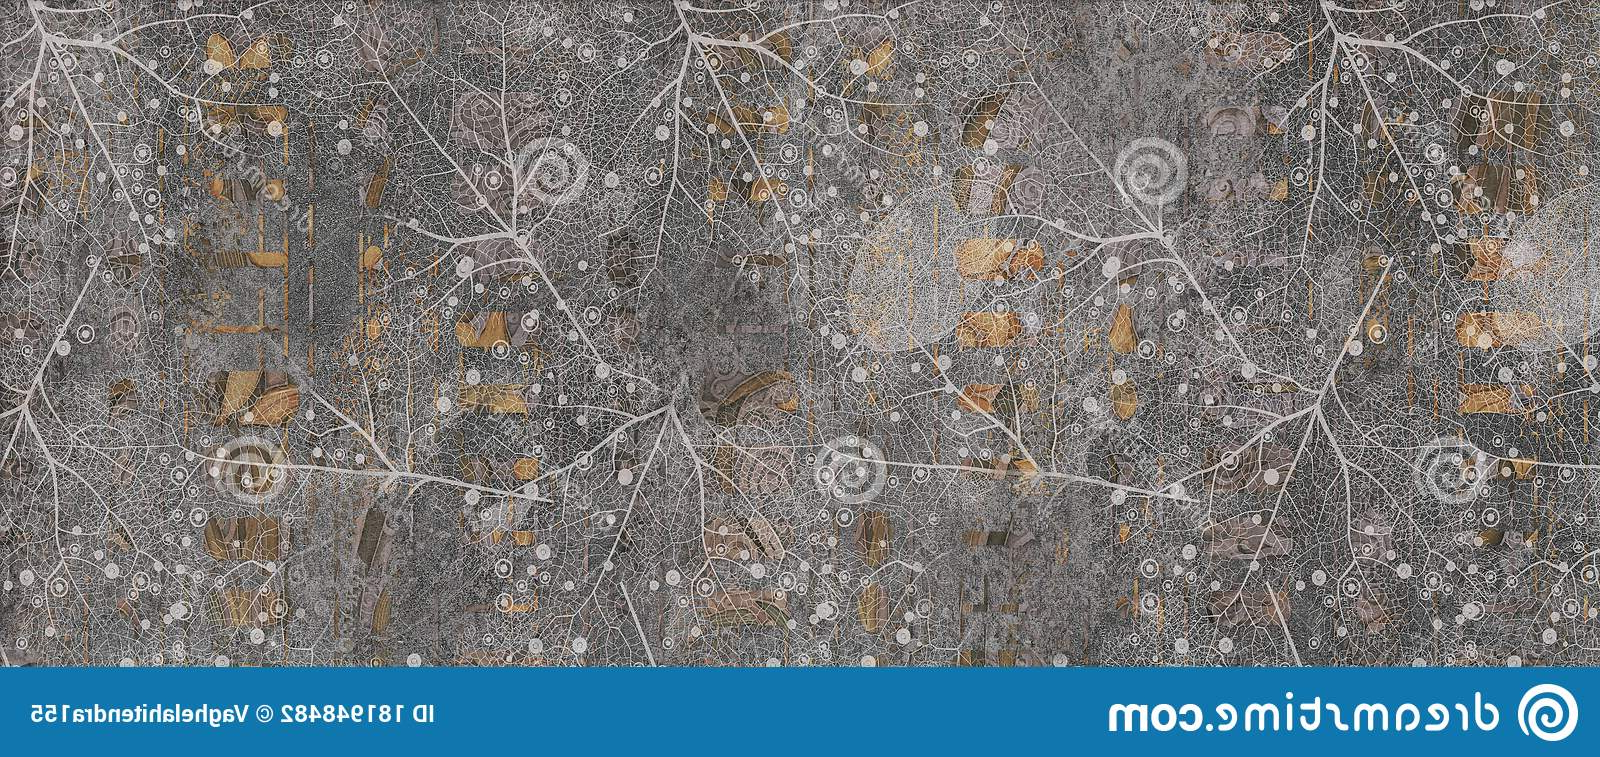 Multicolor Rustic Digital Wall Tile Decor For Interior Home With Most Current Ceramic Rustic Wall Décor (View 5 of 20)